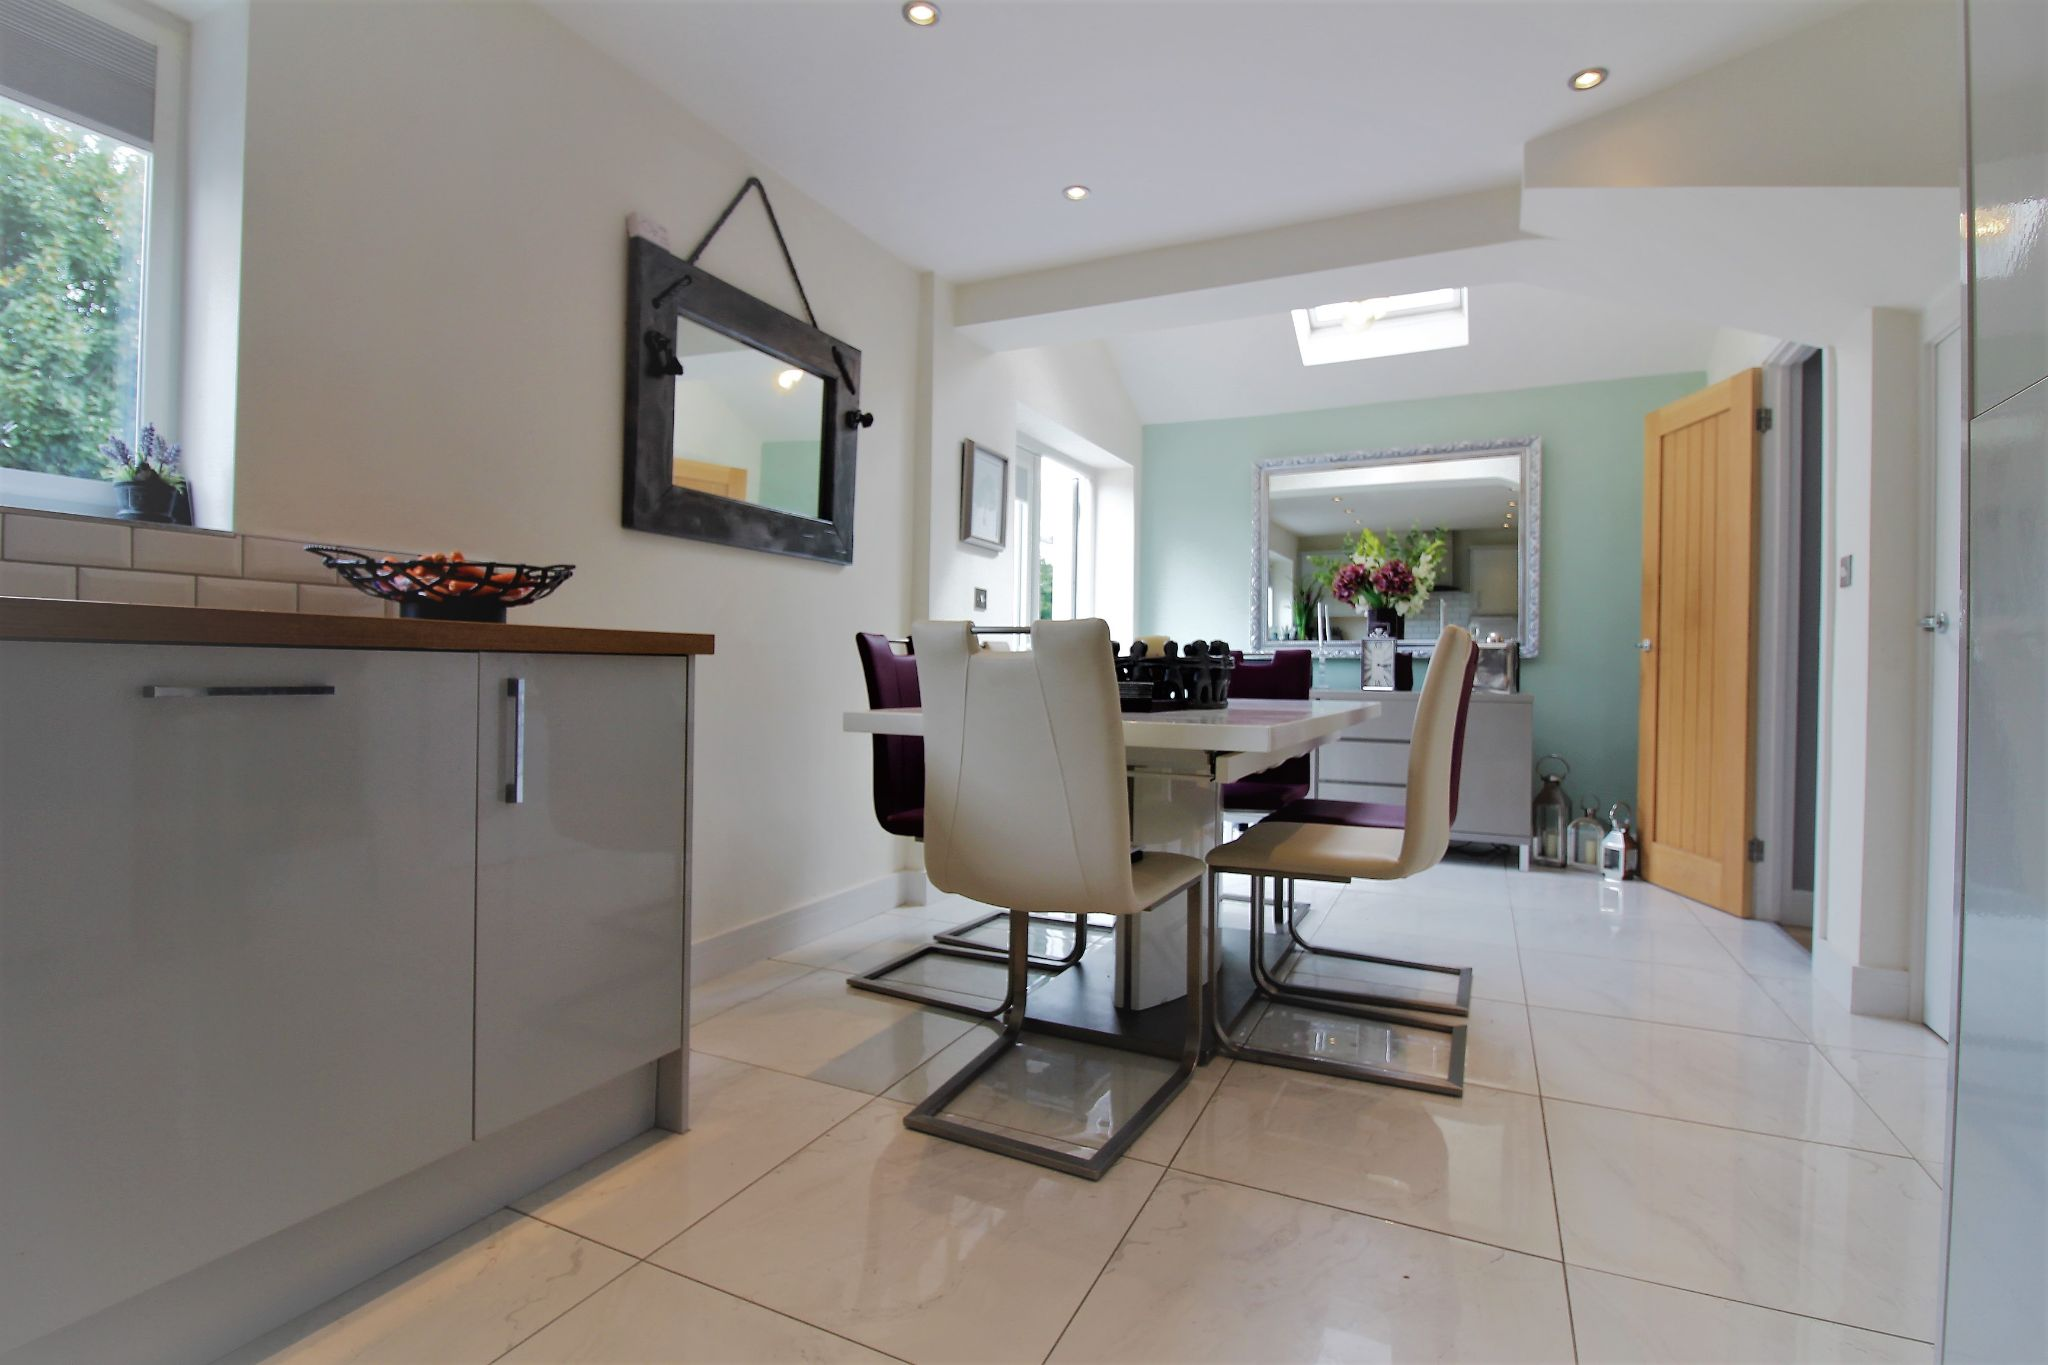 2 bedroom end terraced house For Sale in Solihull - Photograph 5.